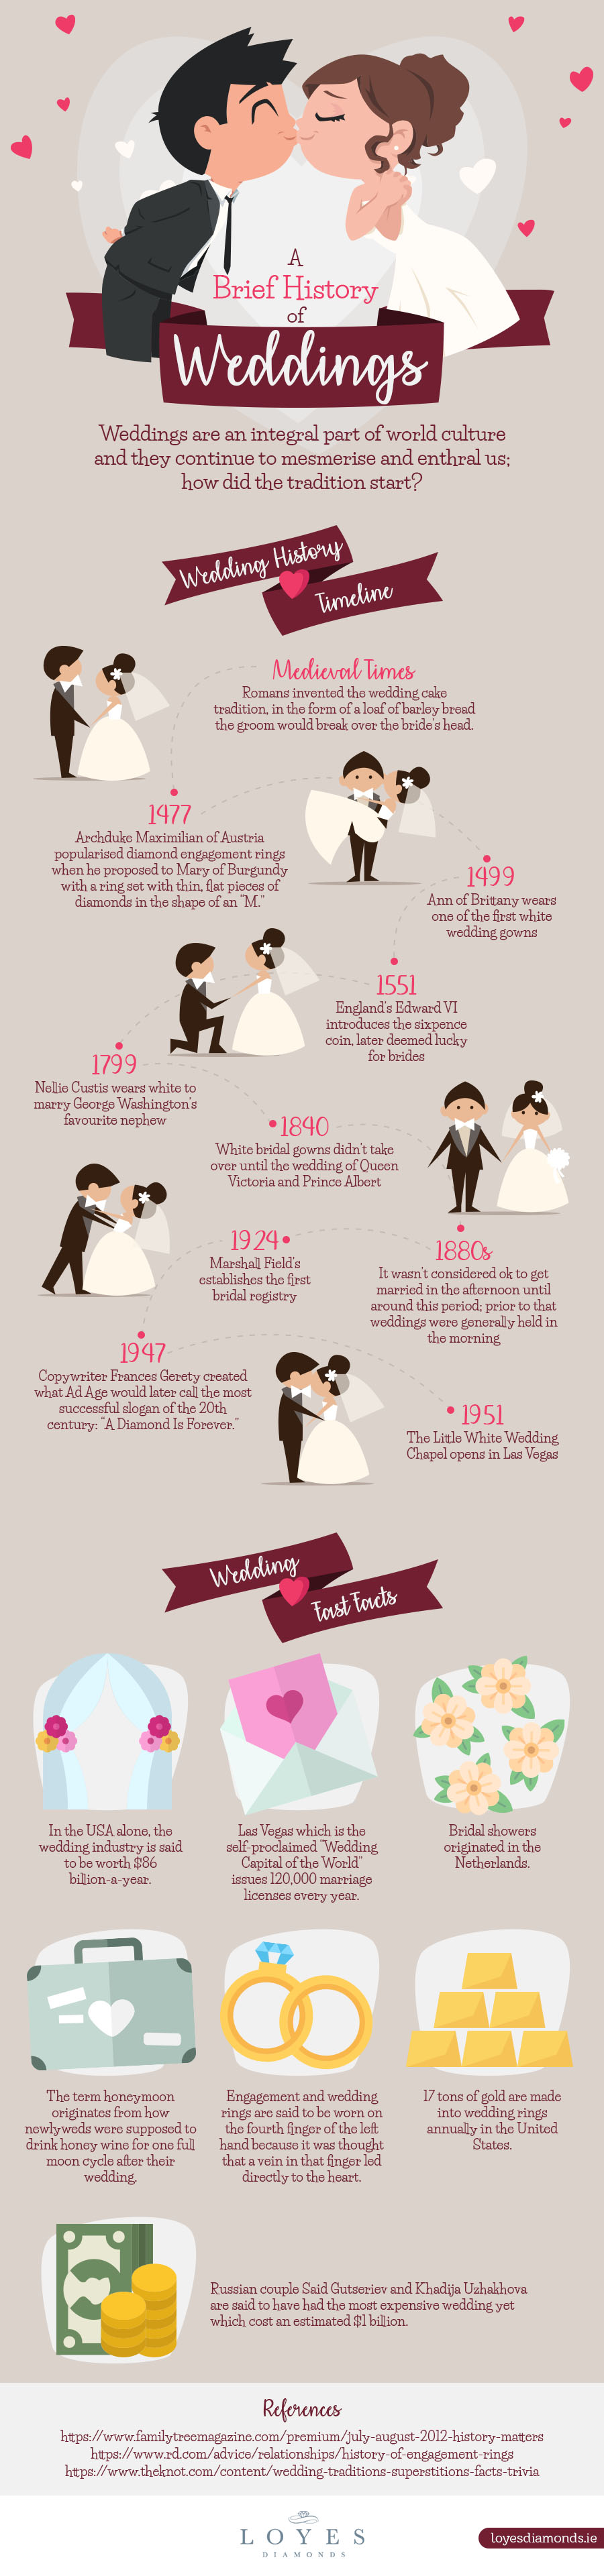 History of Weddings - Infographic